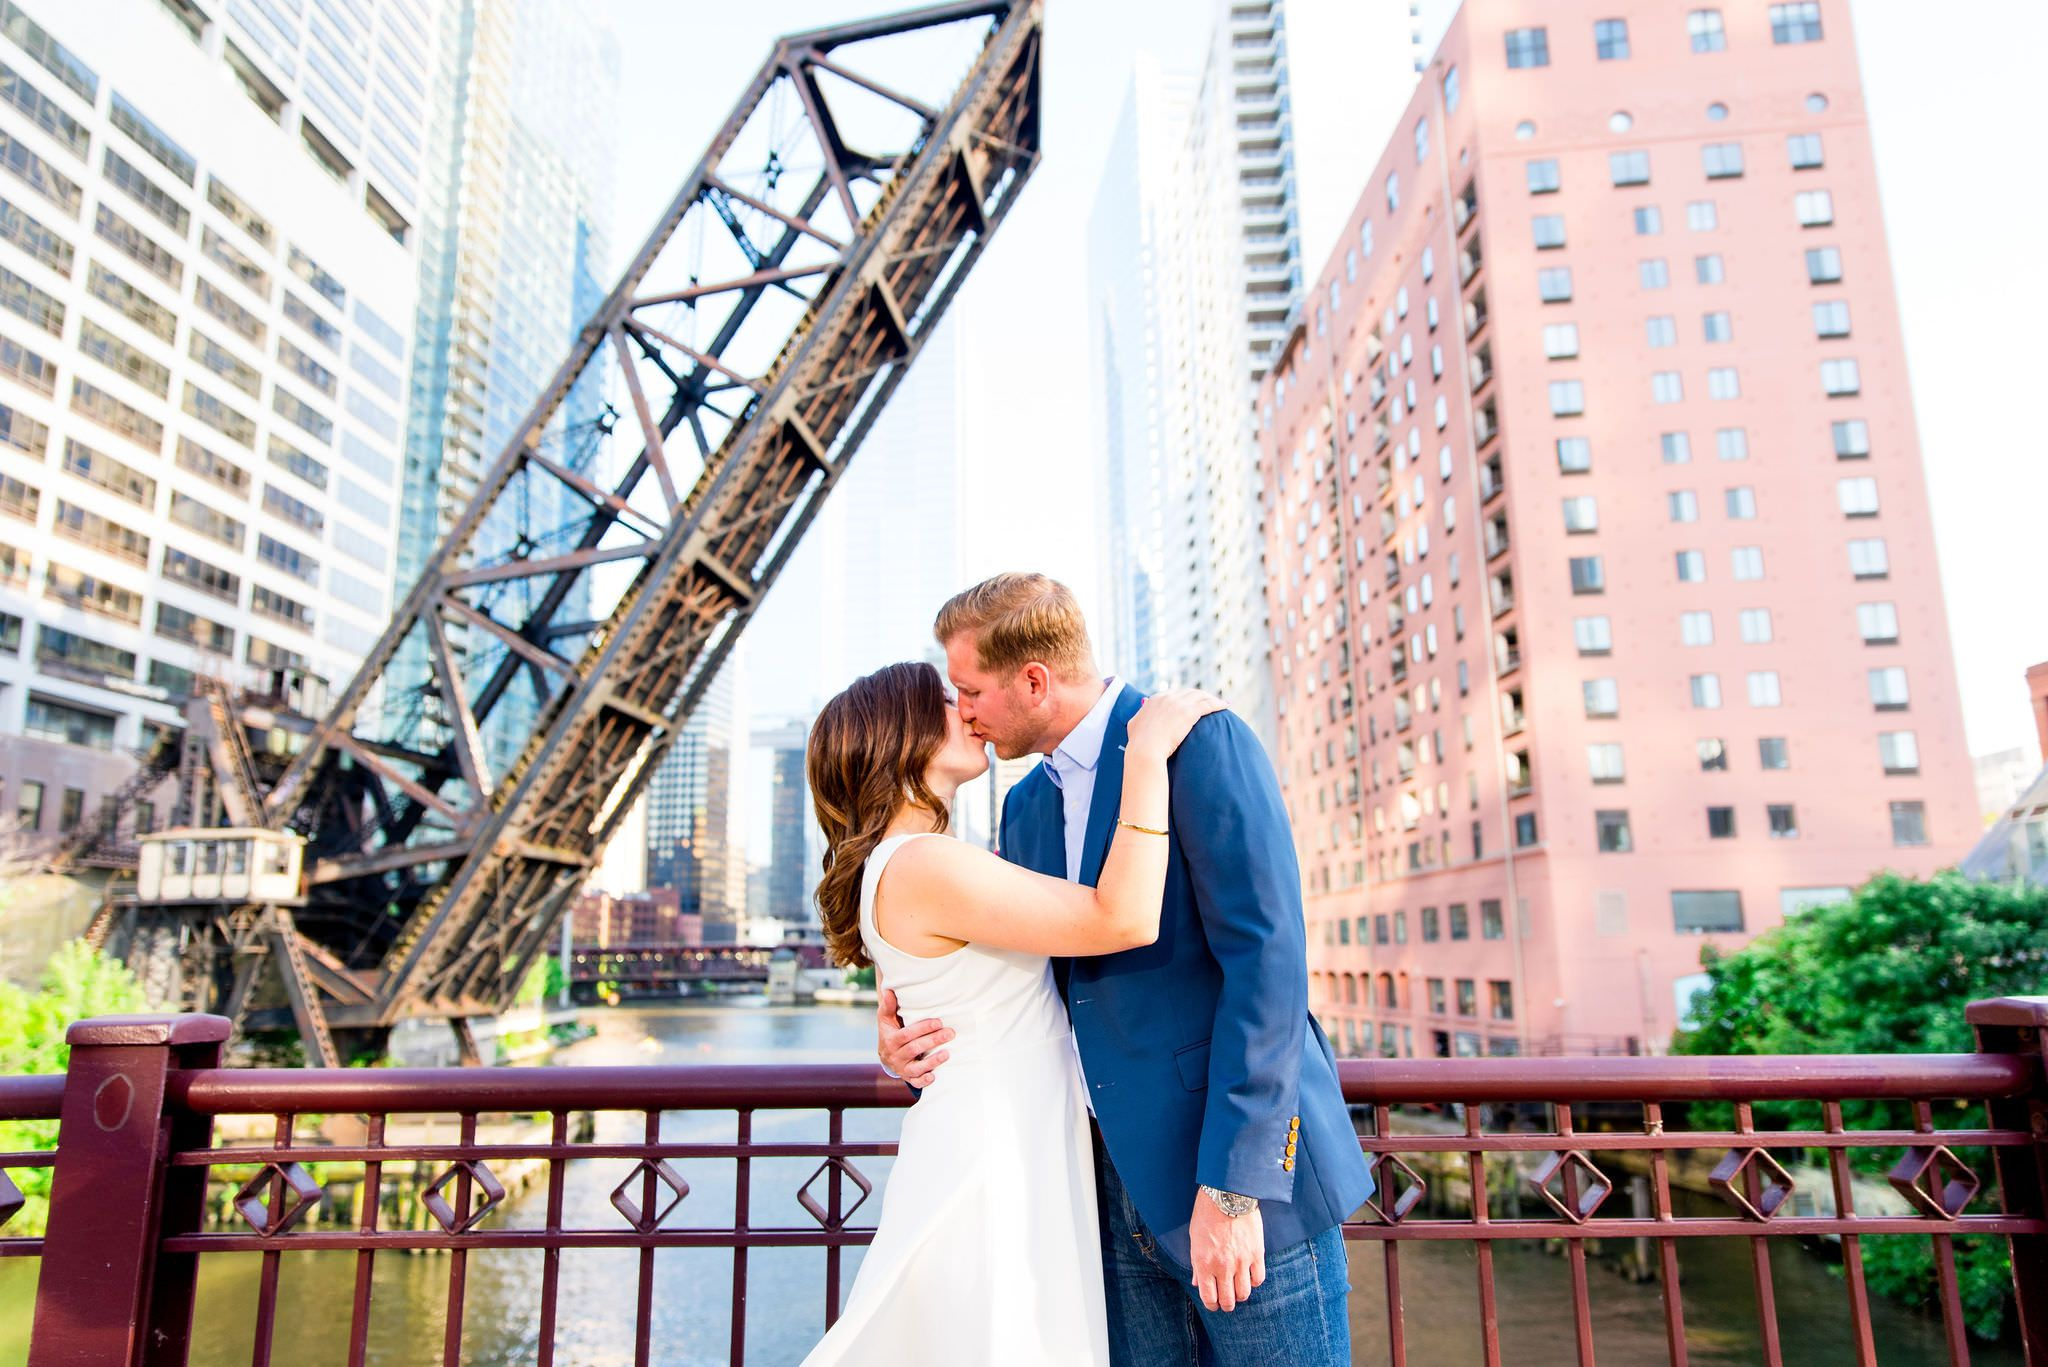 man in navy suit and woman in white dress kissing in front of Chicago River for sunset engagement pictures in Chicago